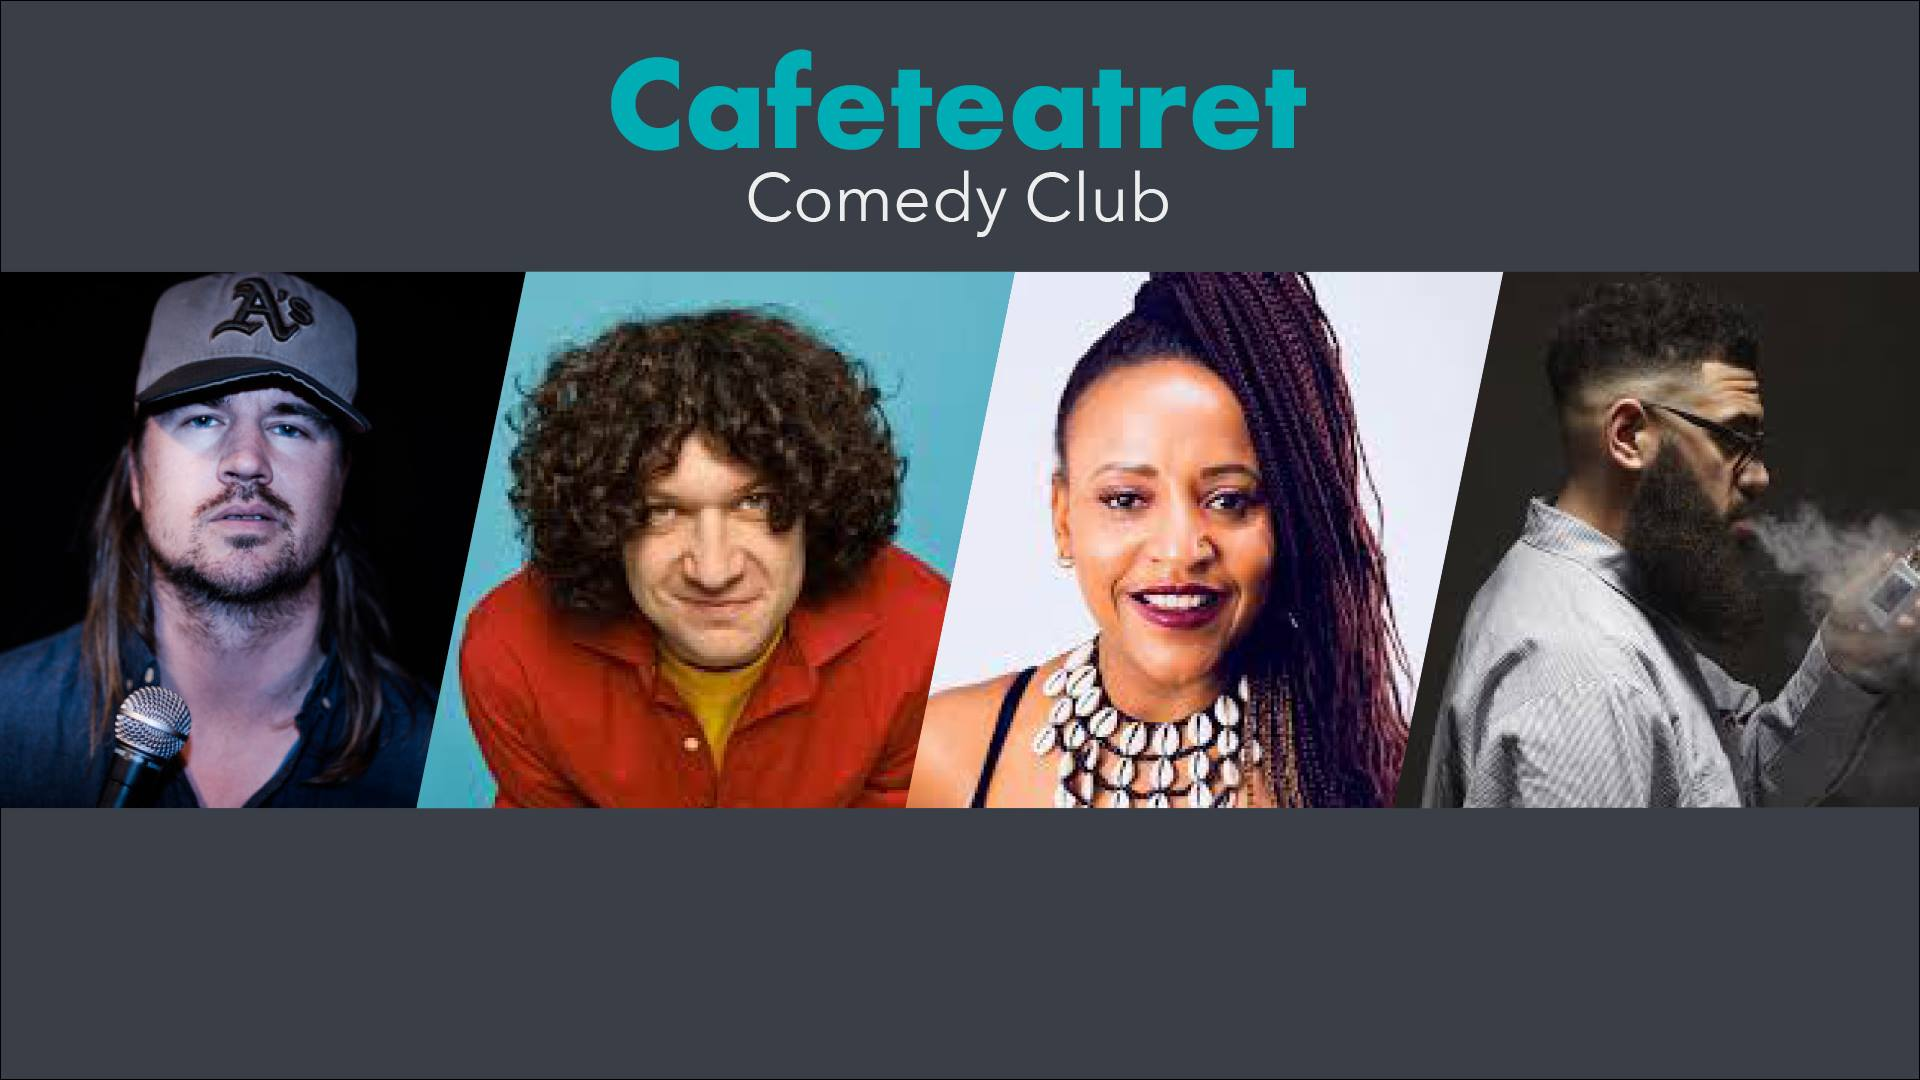 cafeteatret comedy club